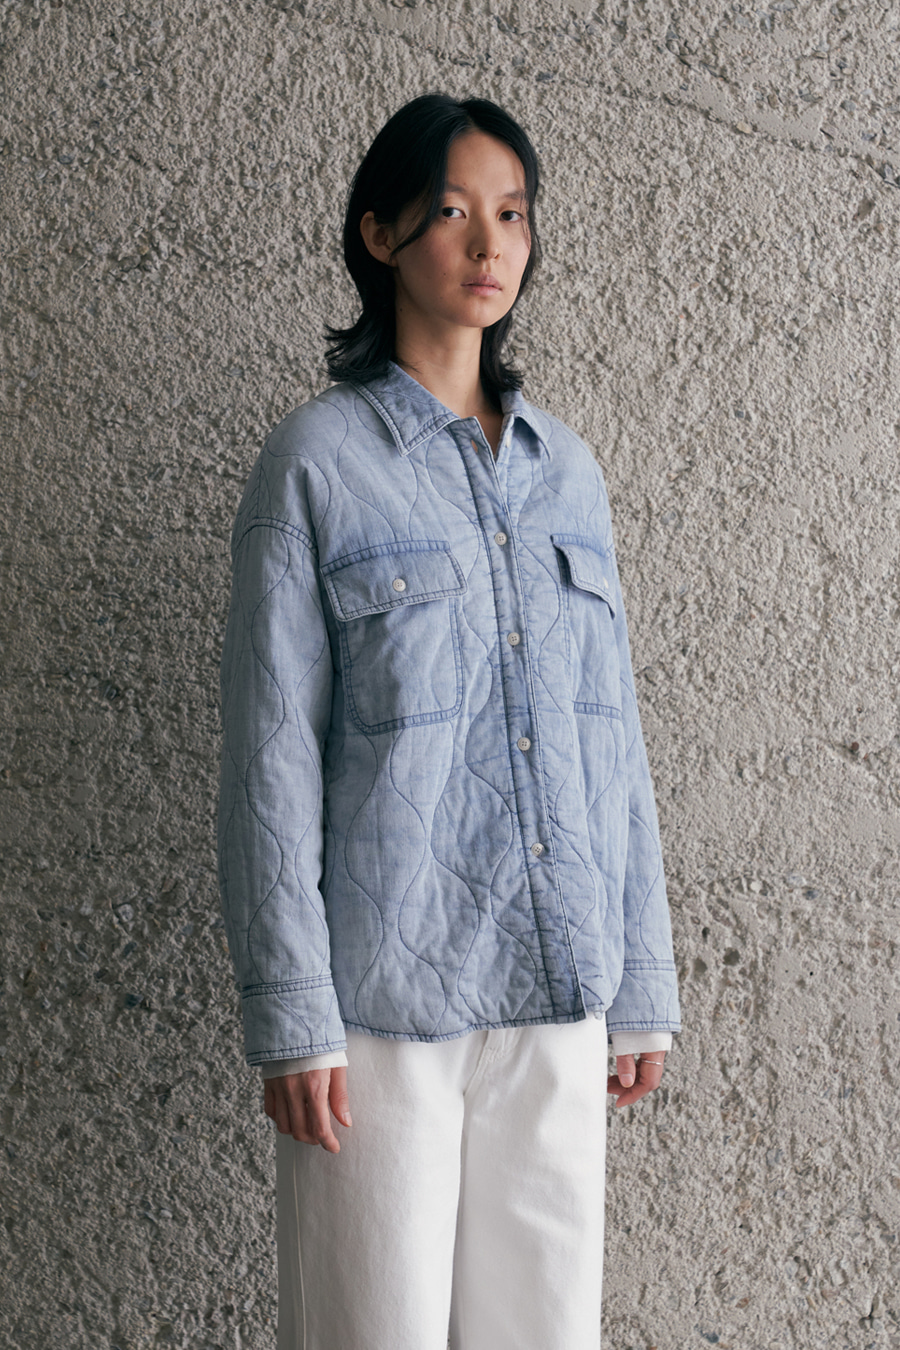 washing denim quilting jacket